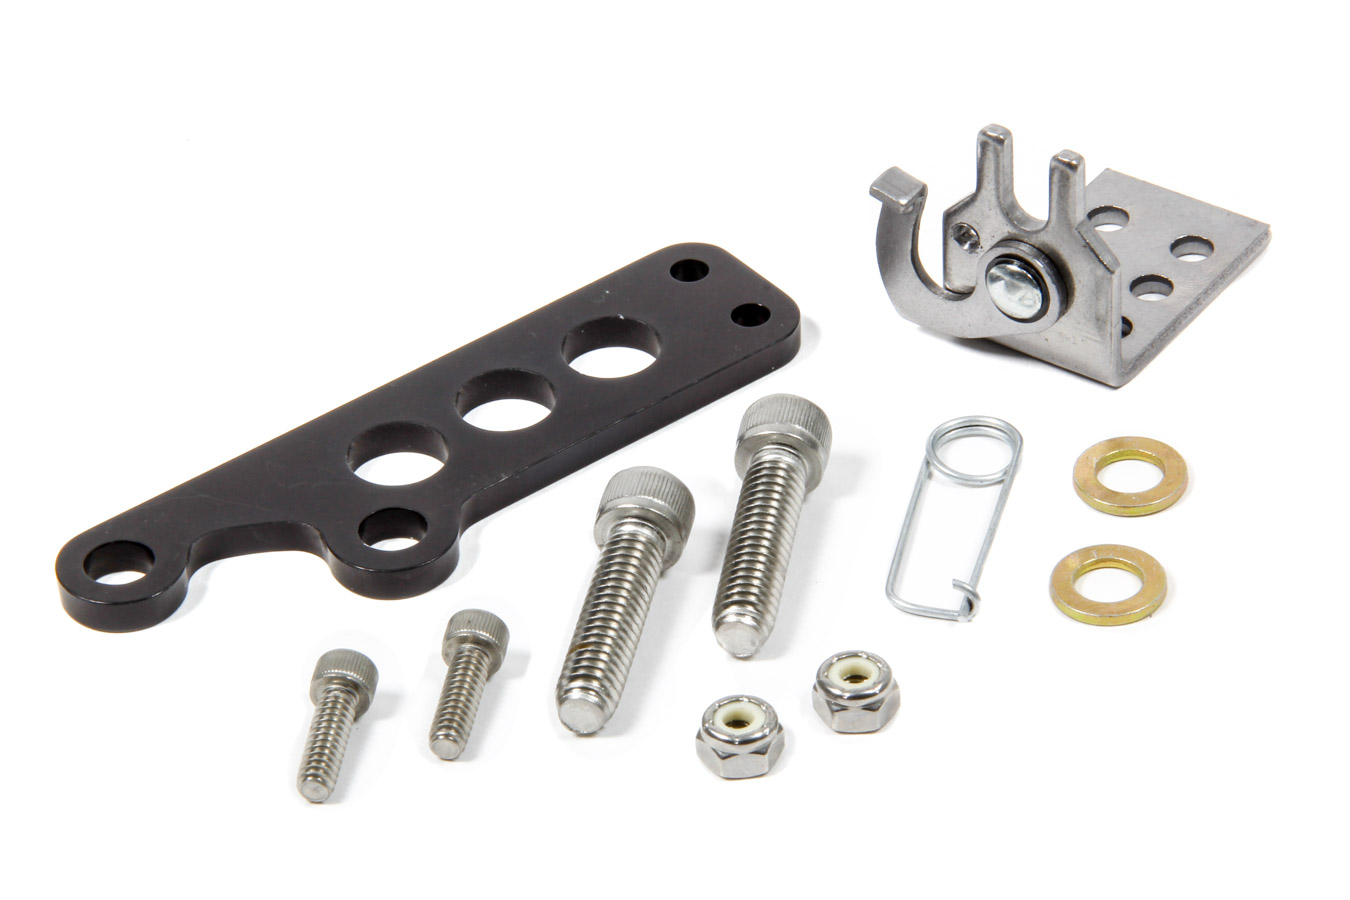 Shop for ENDERLE FUEL INJECTION :: Racecar Engineering